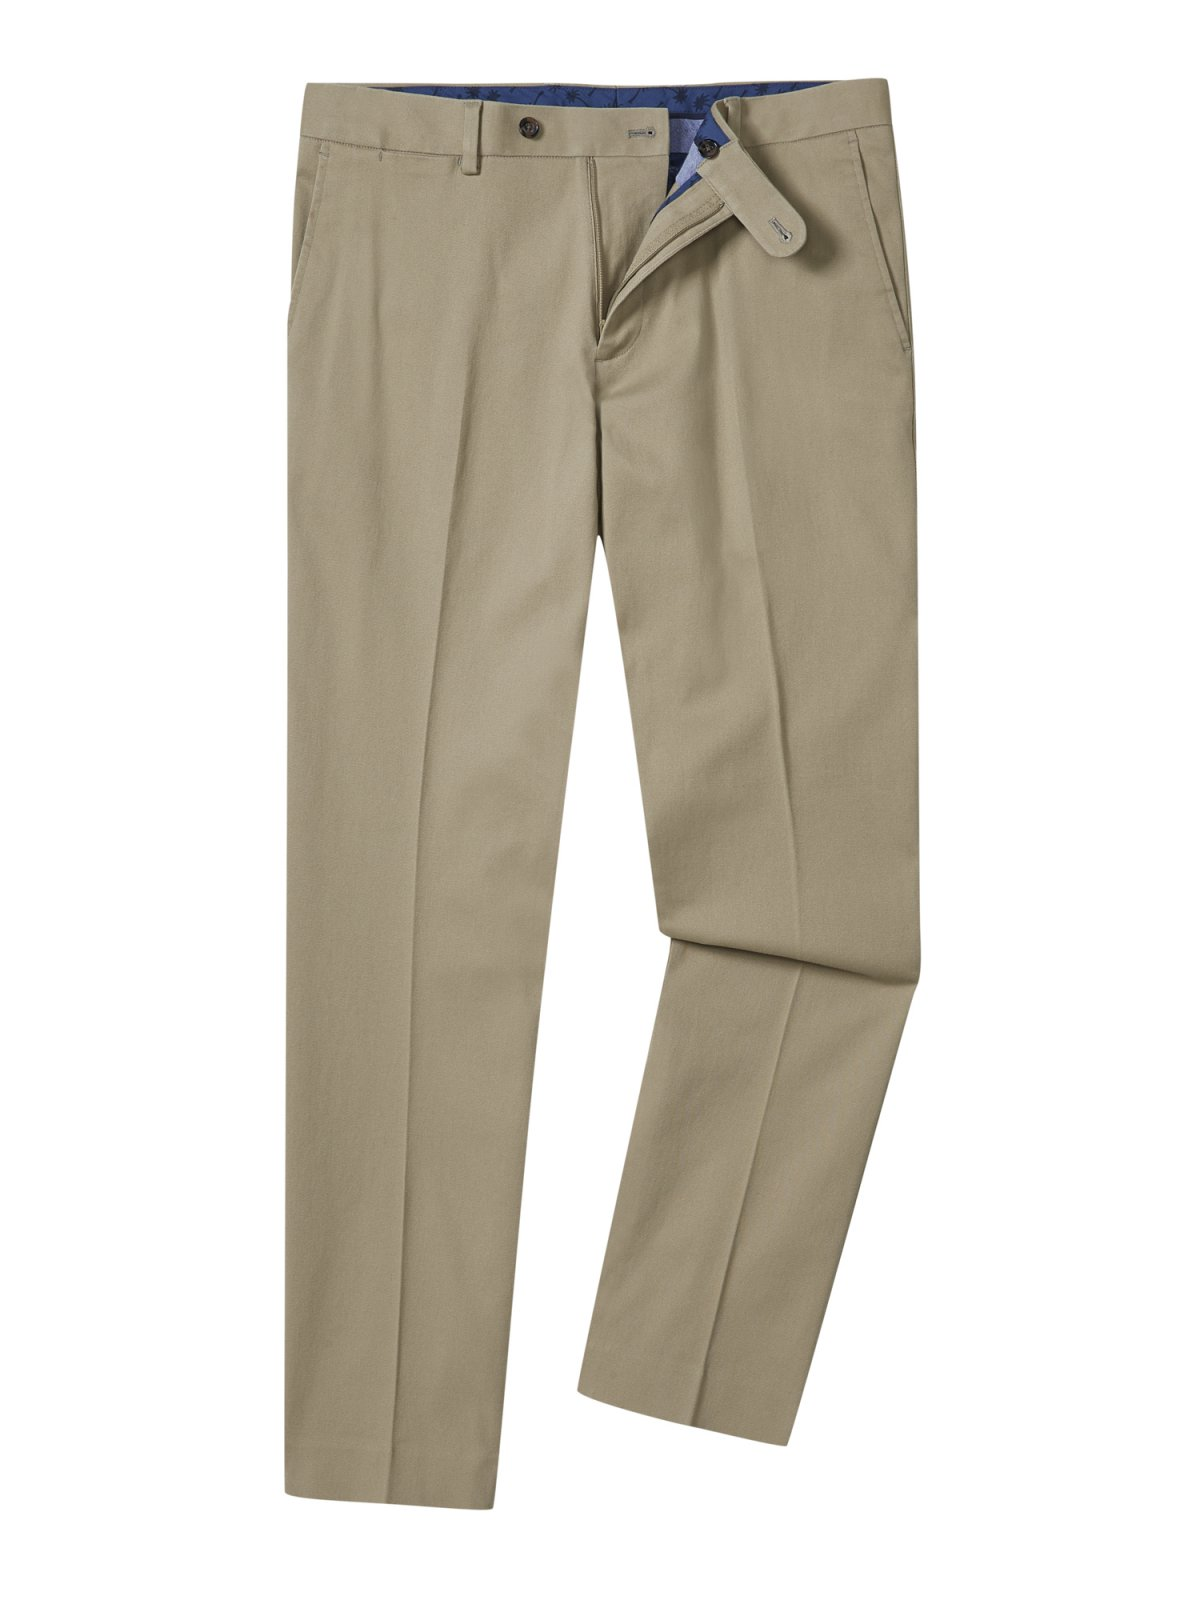 Antibes Tailored fit Active waist Stretch Chino